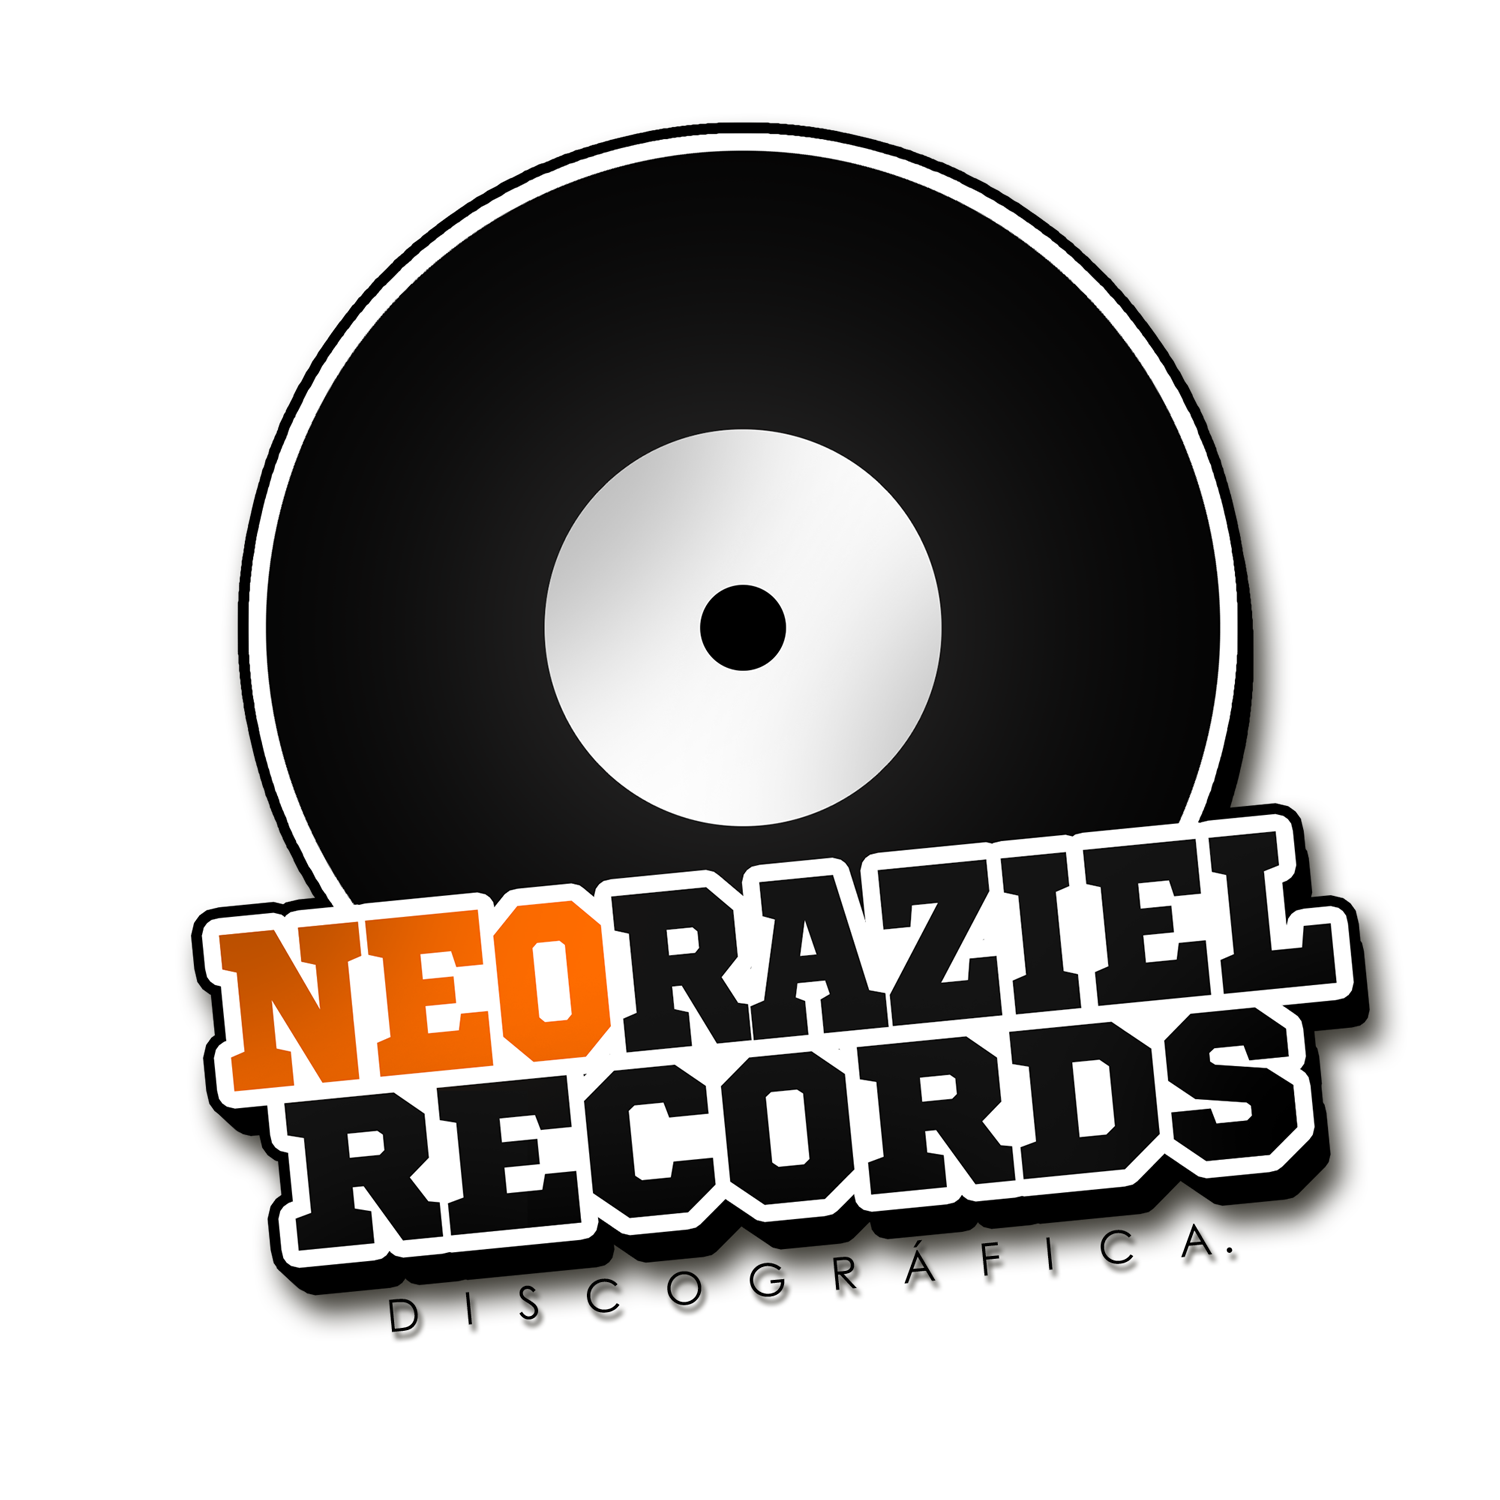 Neoraziel Records